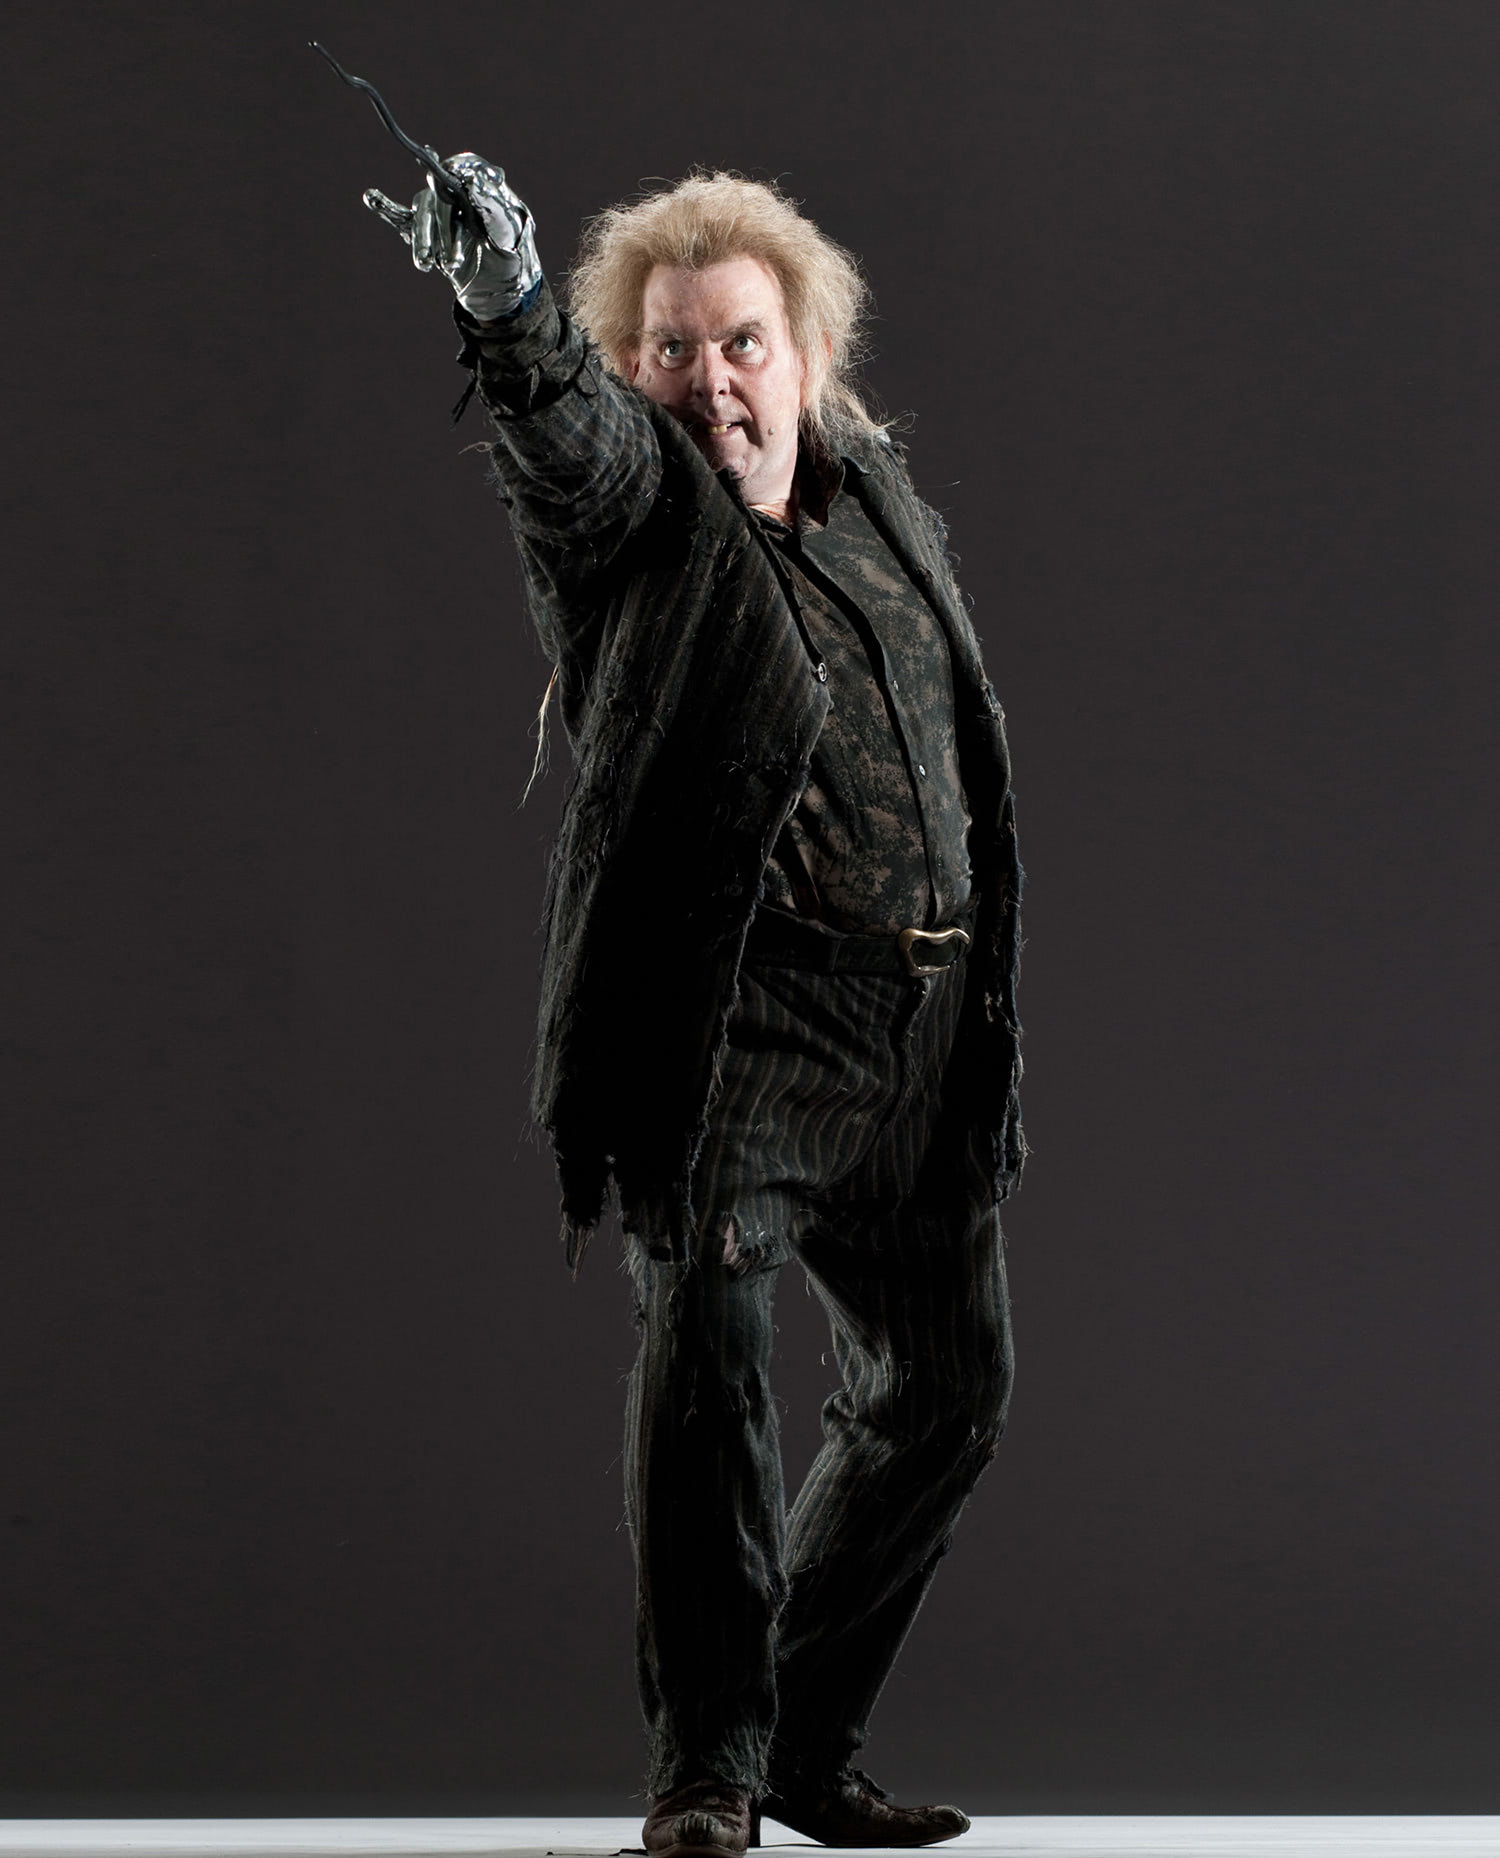 Portrait of Peter Pettigrew (Wormtail)